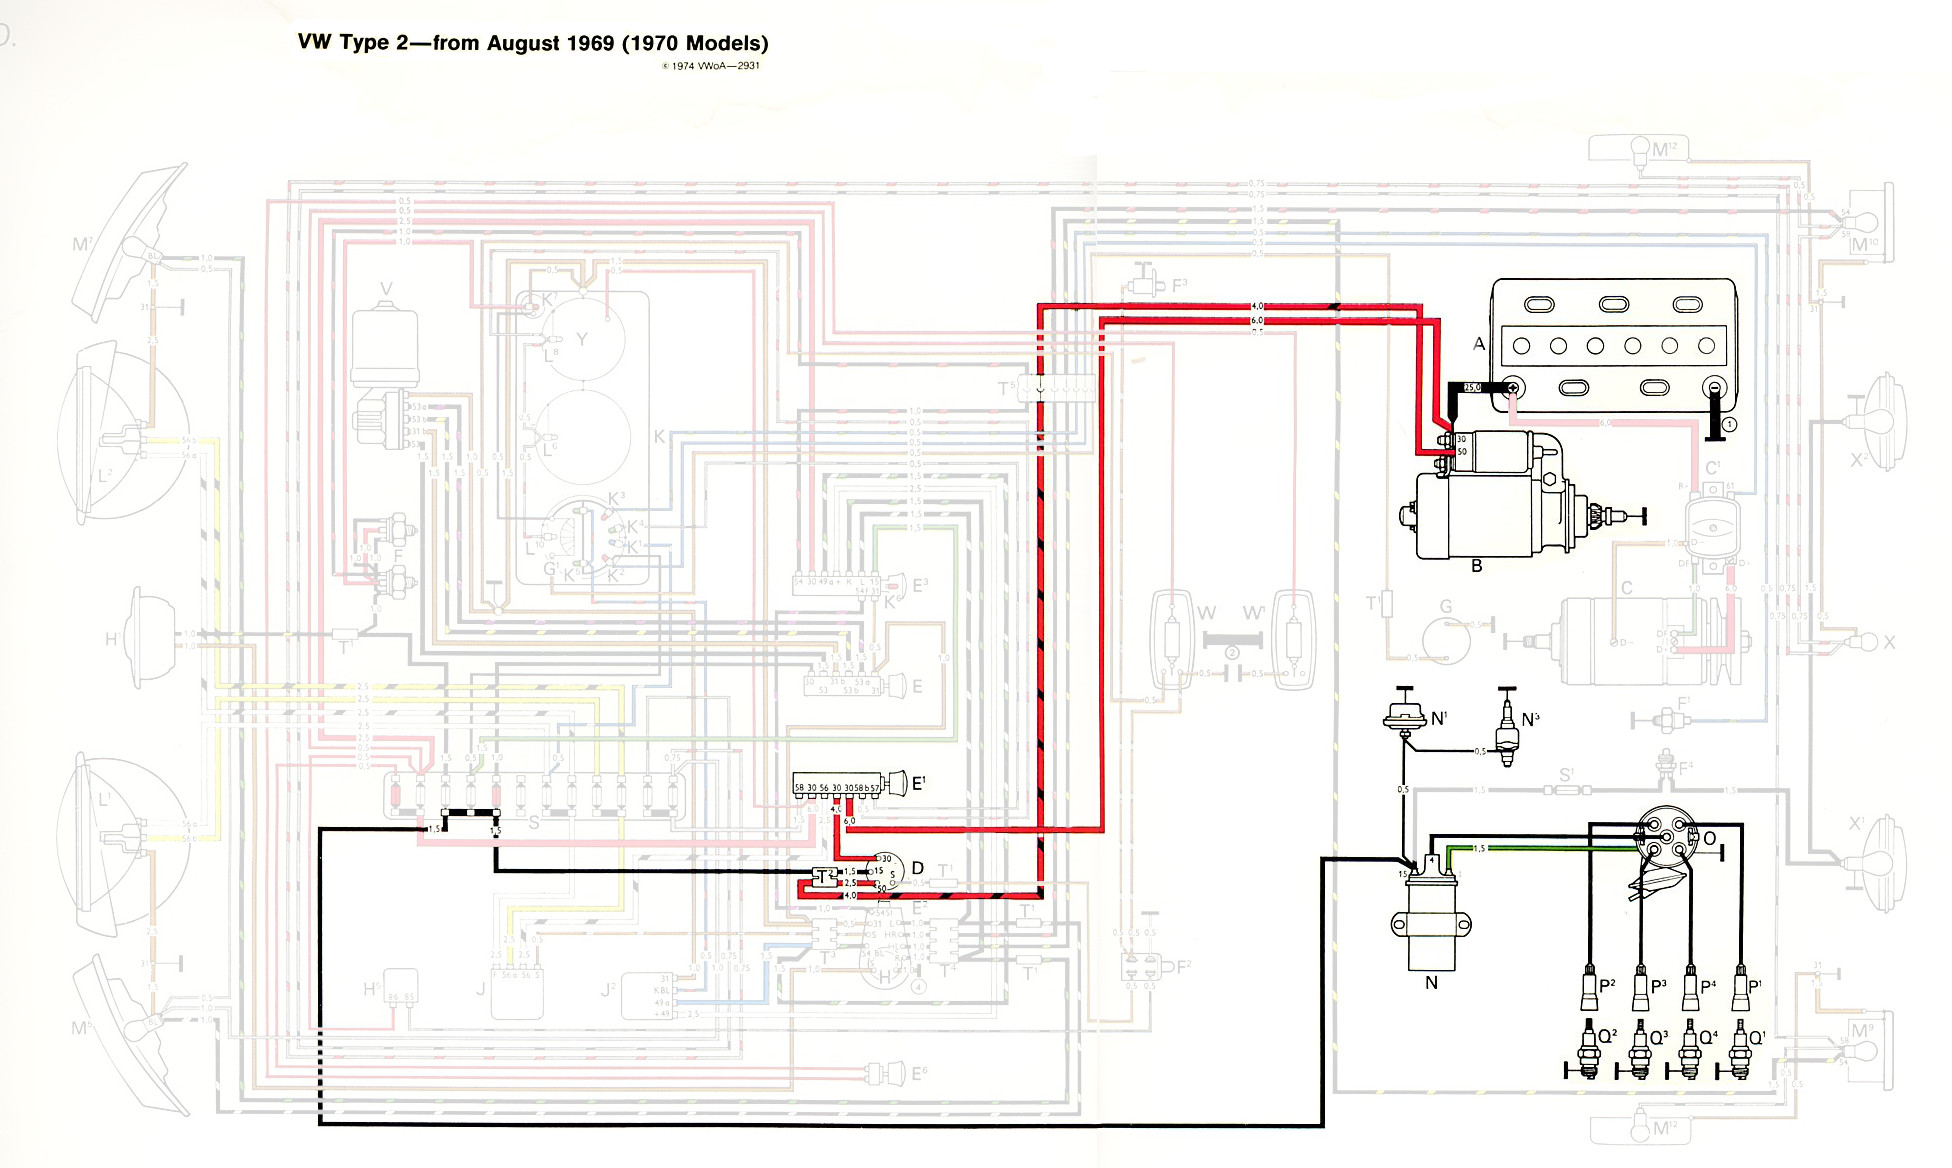 1974 vw ignition wiring diagram mk1 vw ignition wiring diagram